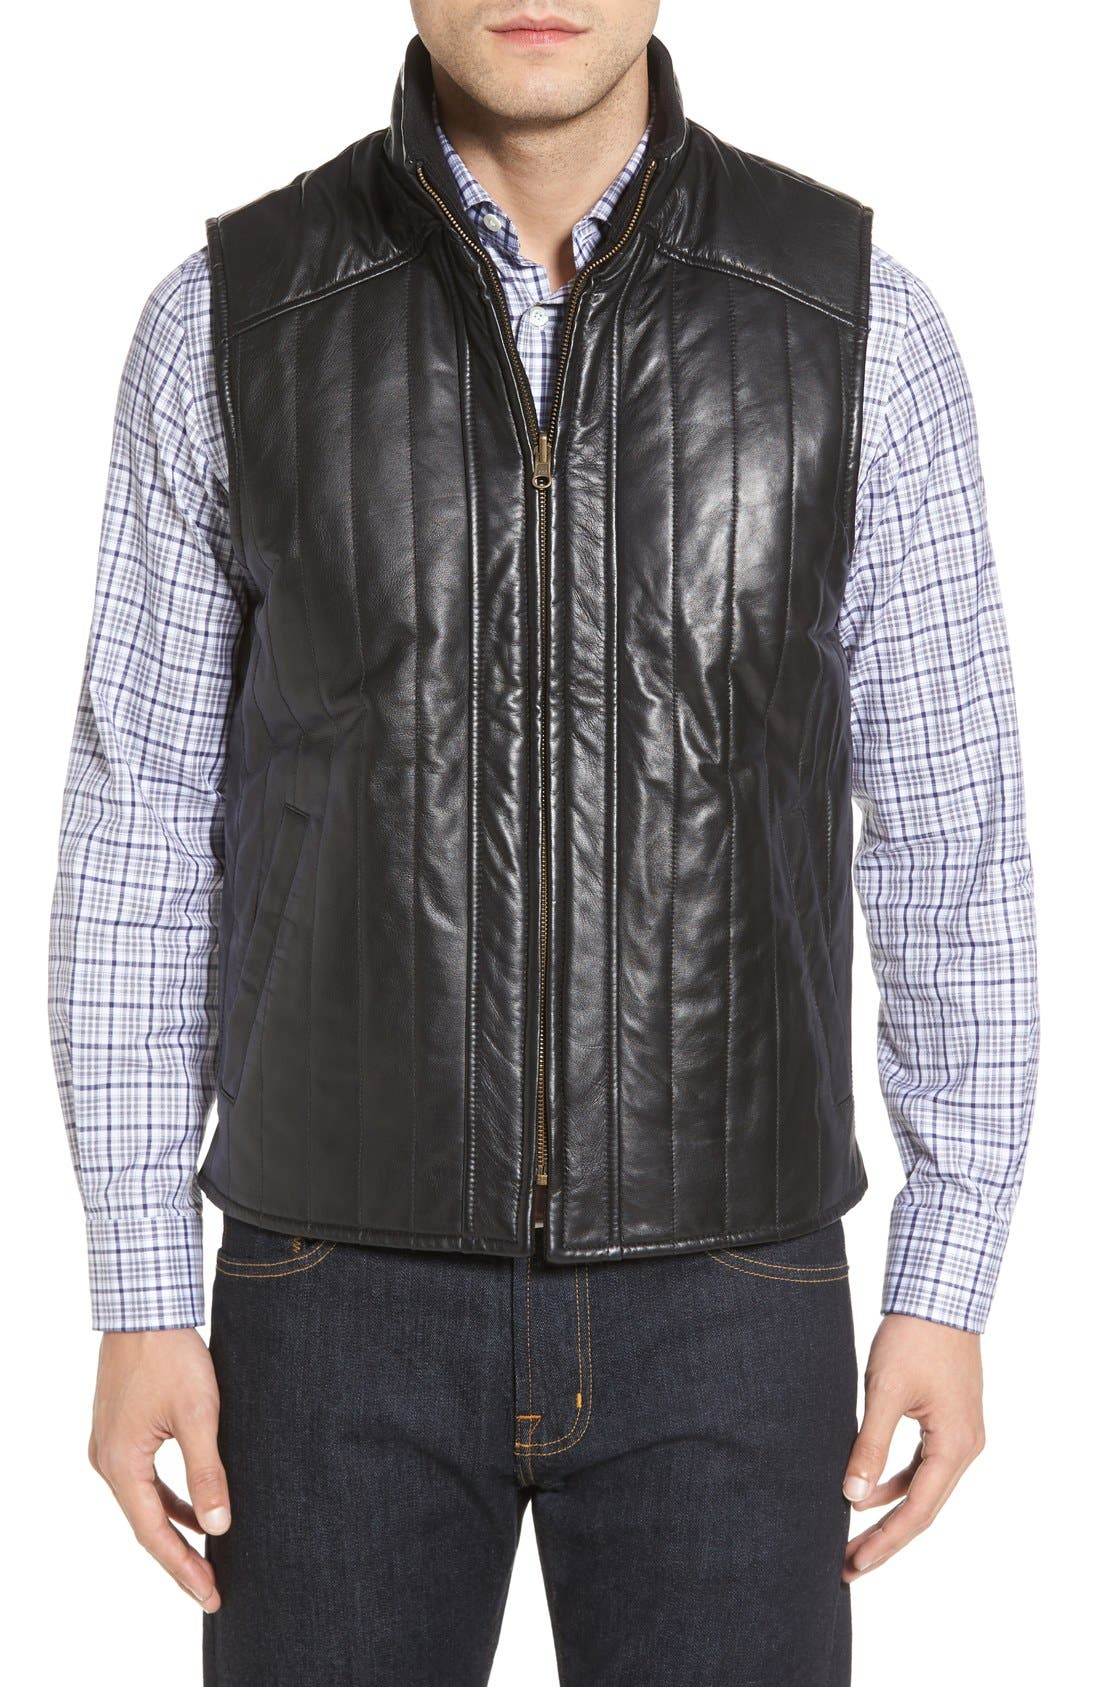 Alternate Image 1 Selected - Missani Le Collezioni Puffy Leather & Wool Blend Reversible Vest